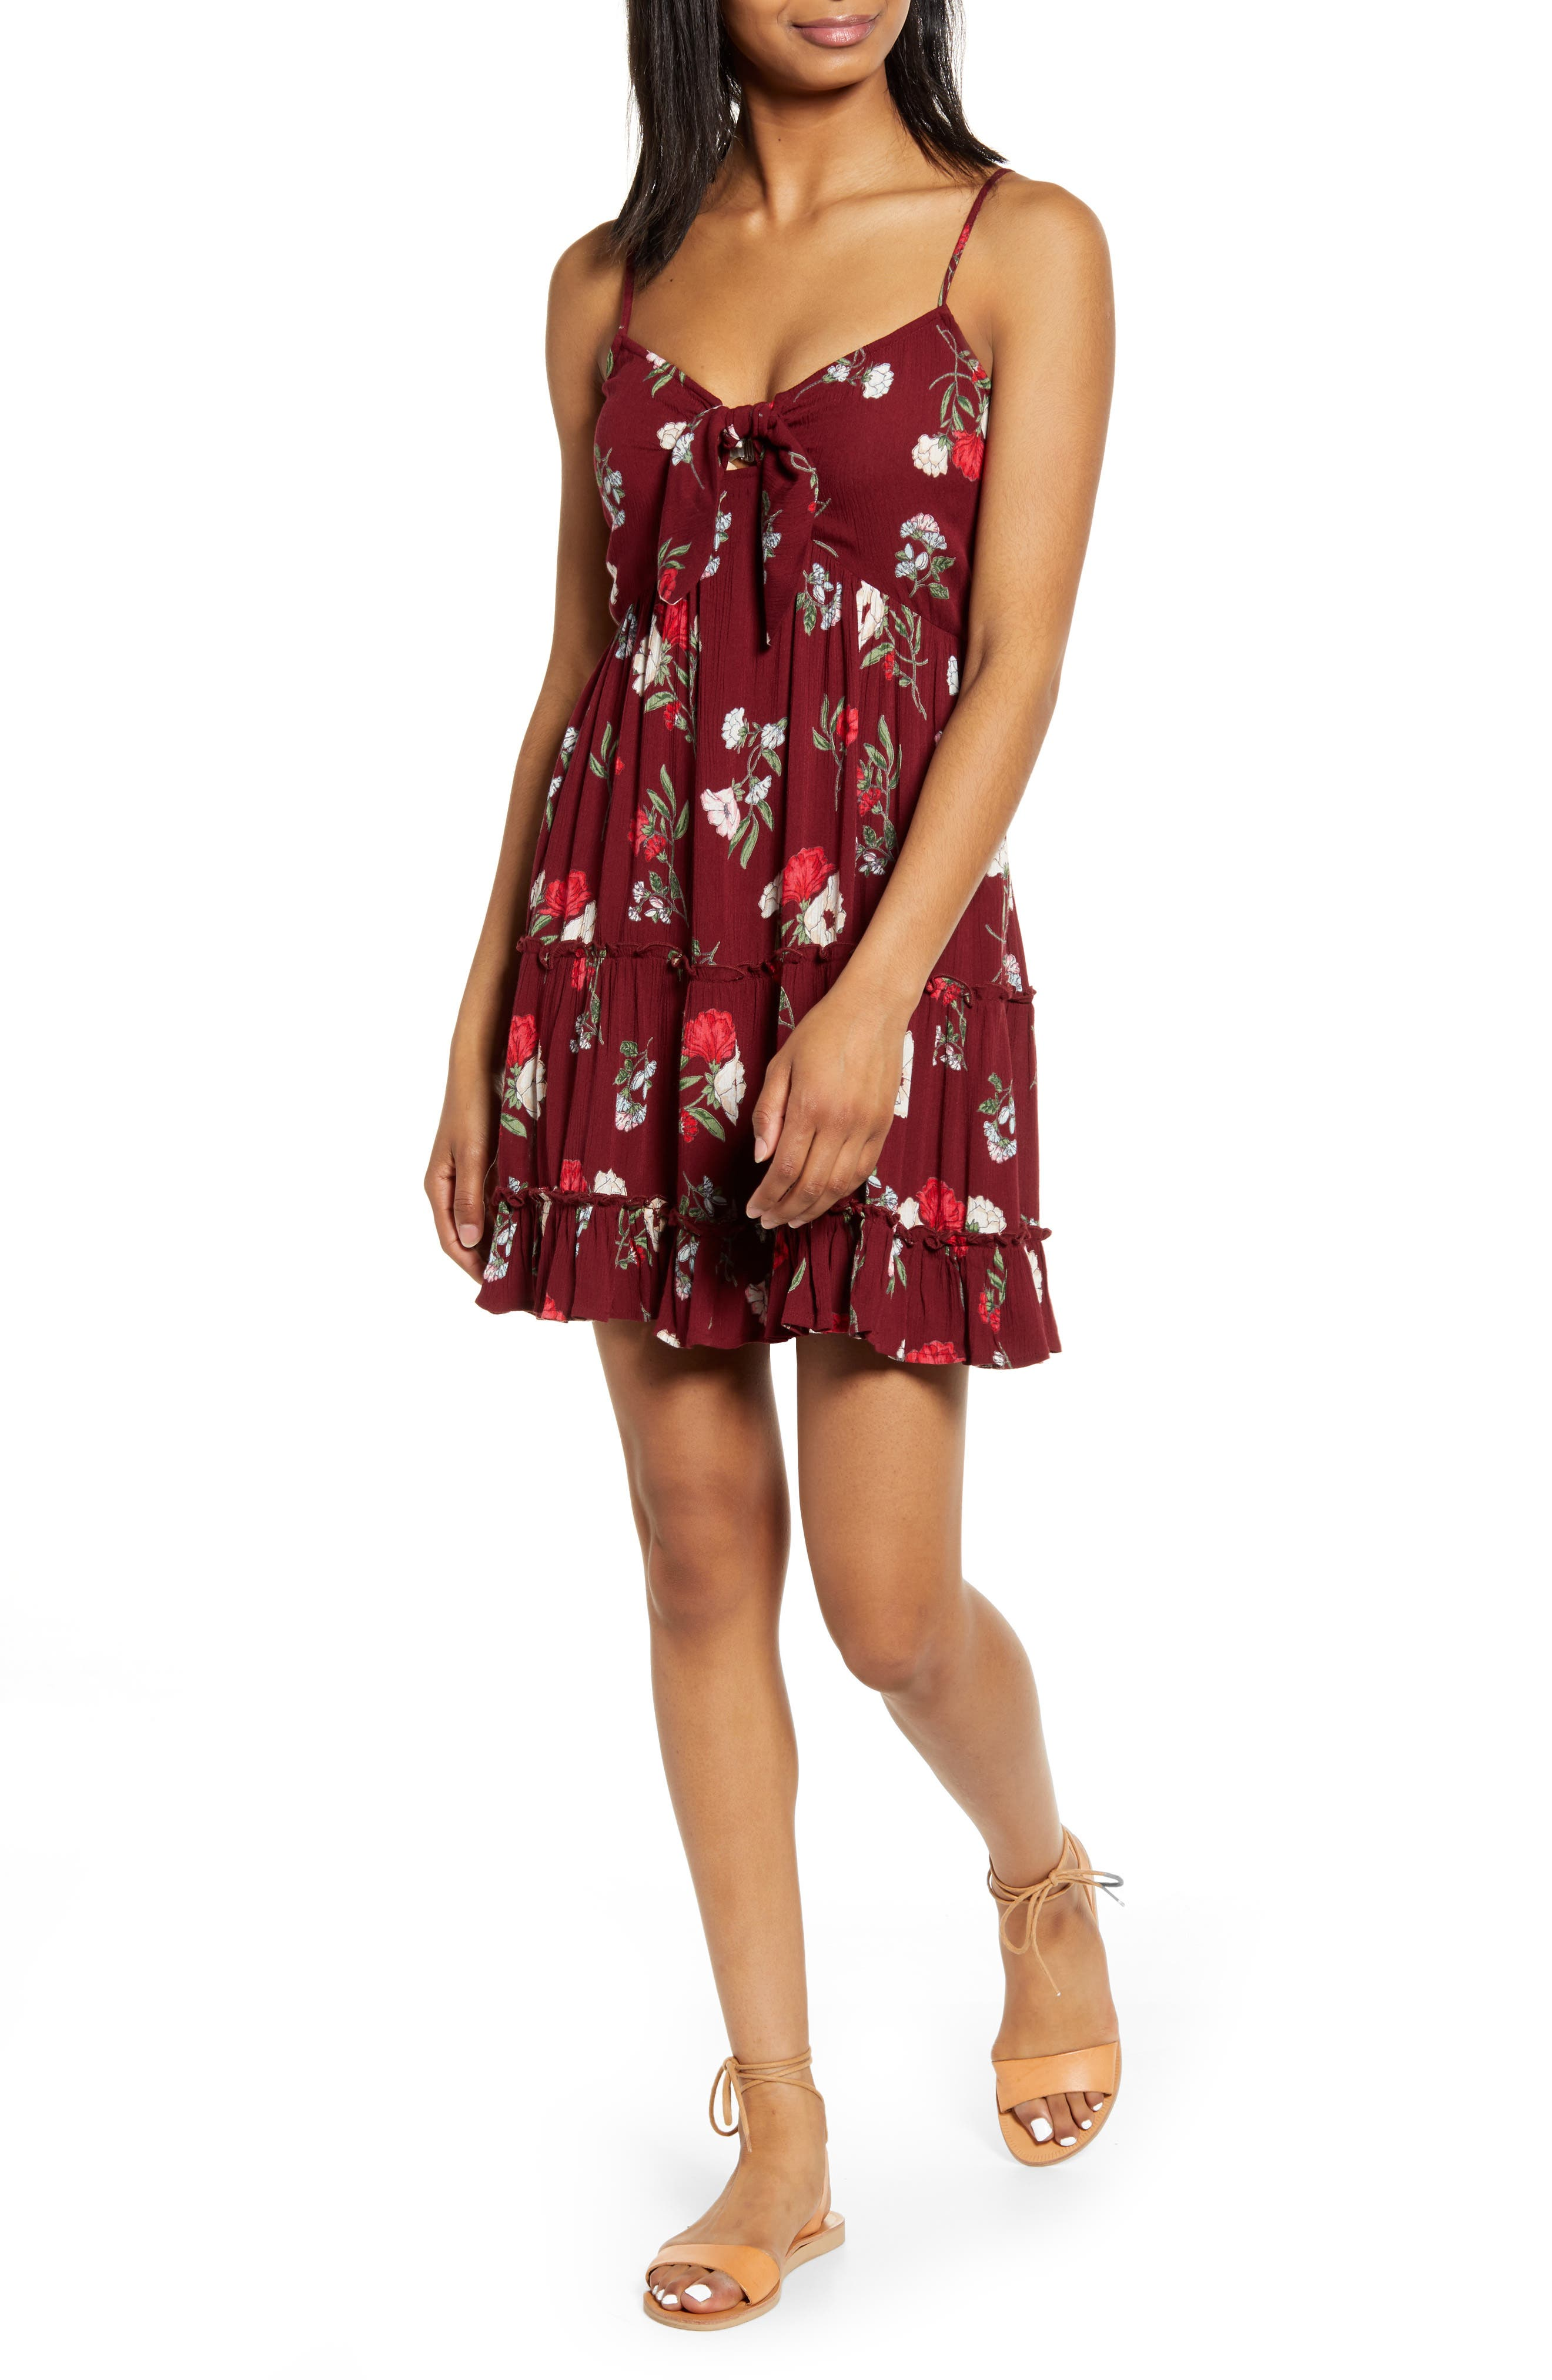 Band Of Gypsies Floral Print Tie Front Dress, Burgundy